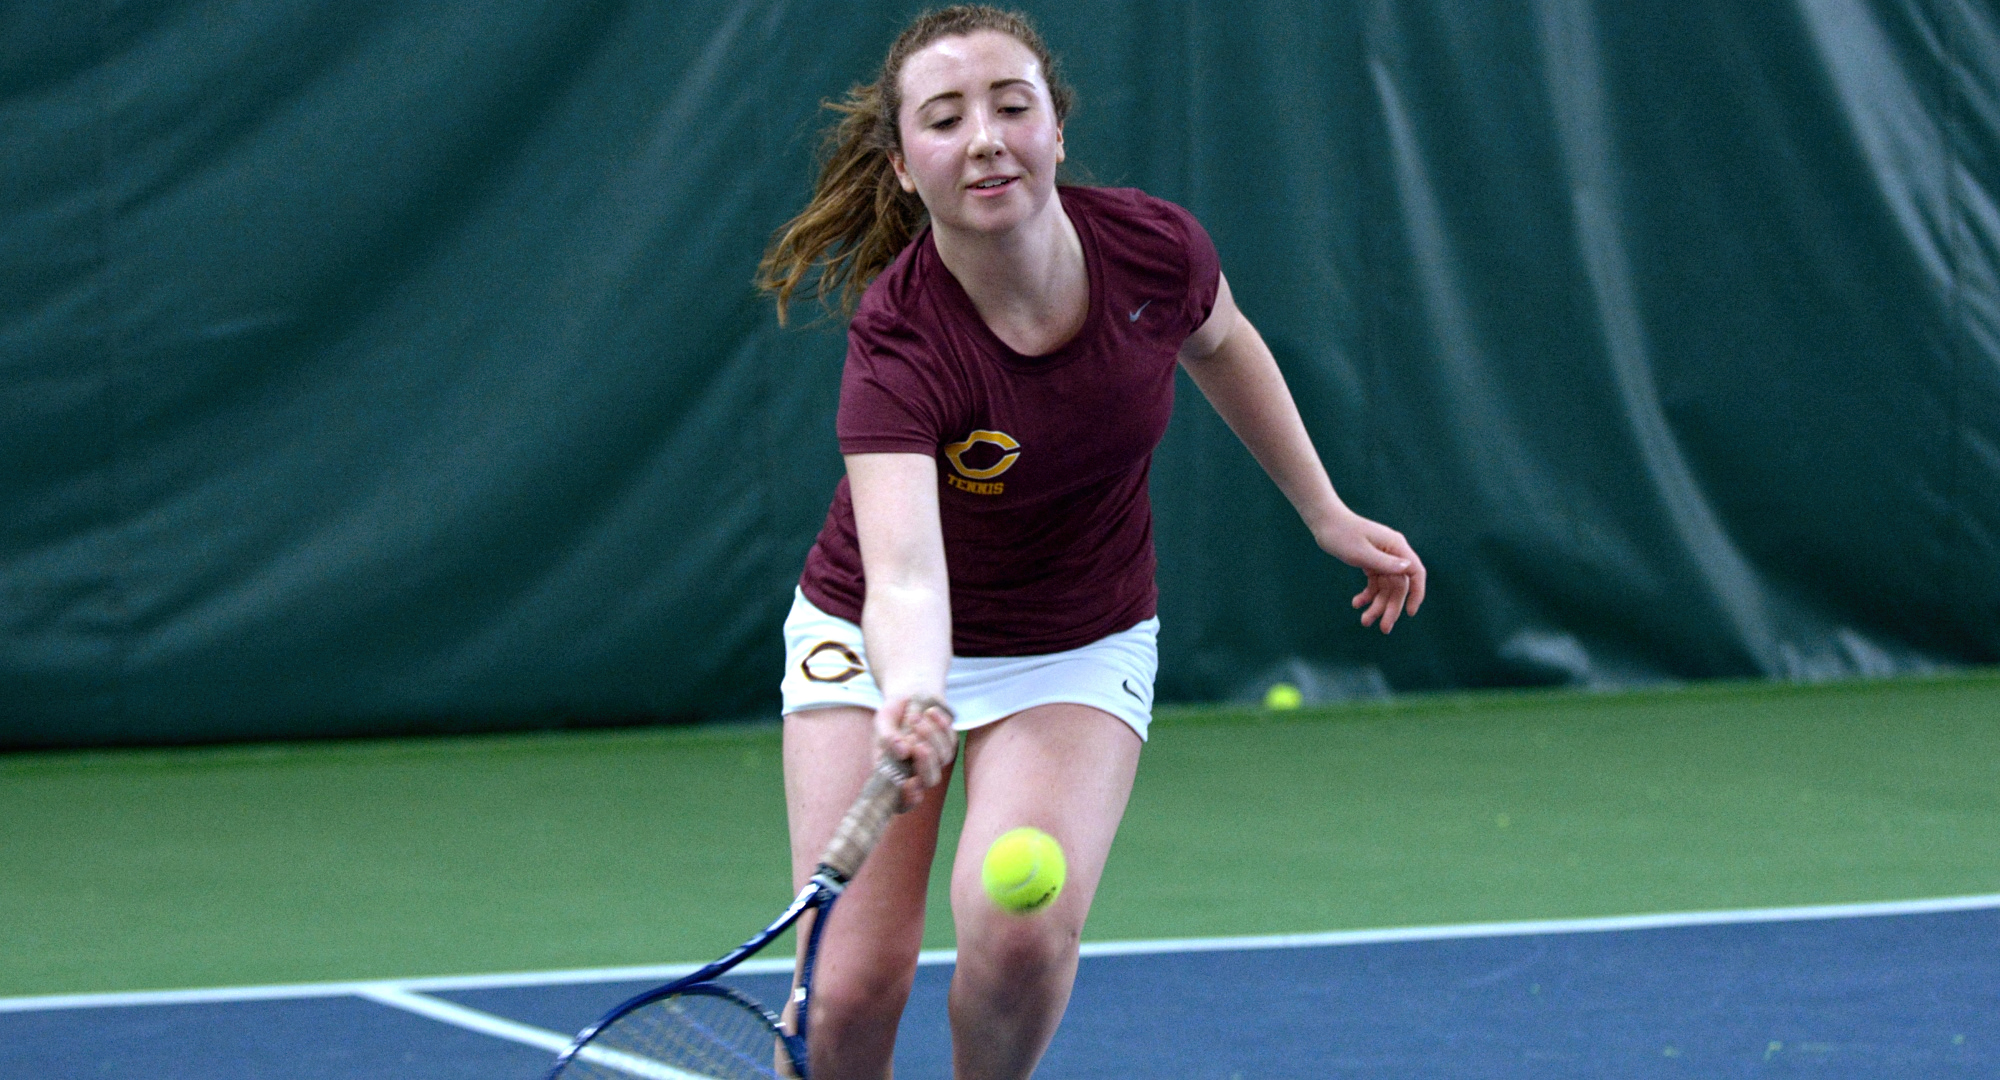 Freshman Talia Dalzell won her first collegiate singles match as she posted a 6-4, 5-7, 11-9 win in the Cobbers' match with Division II Bemidji State.